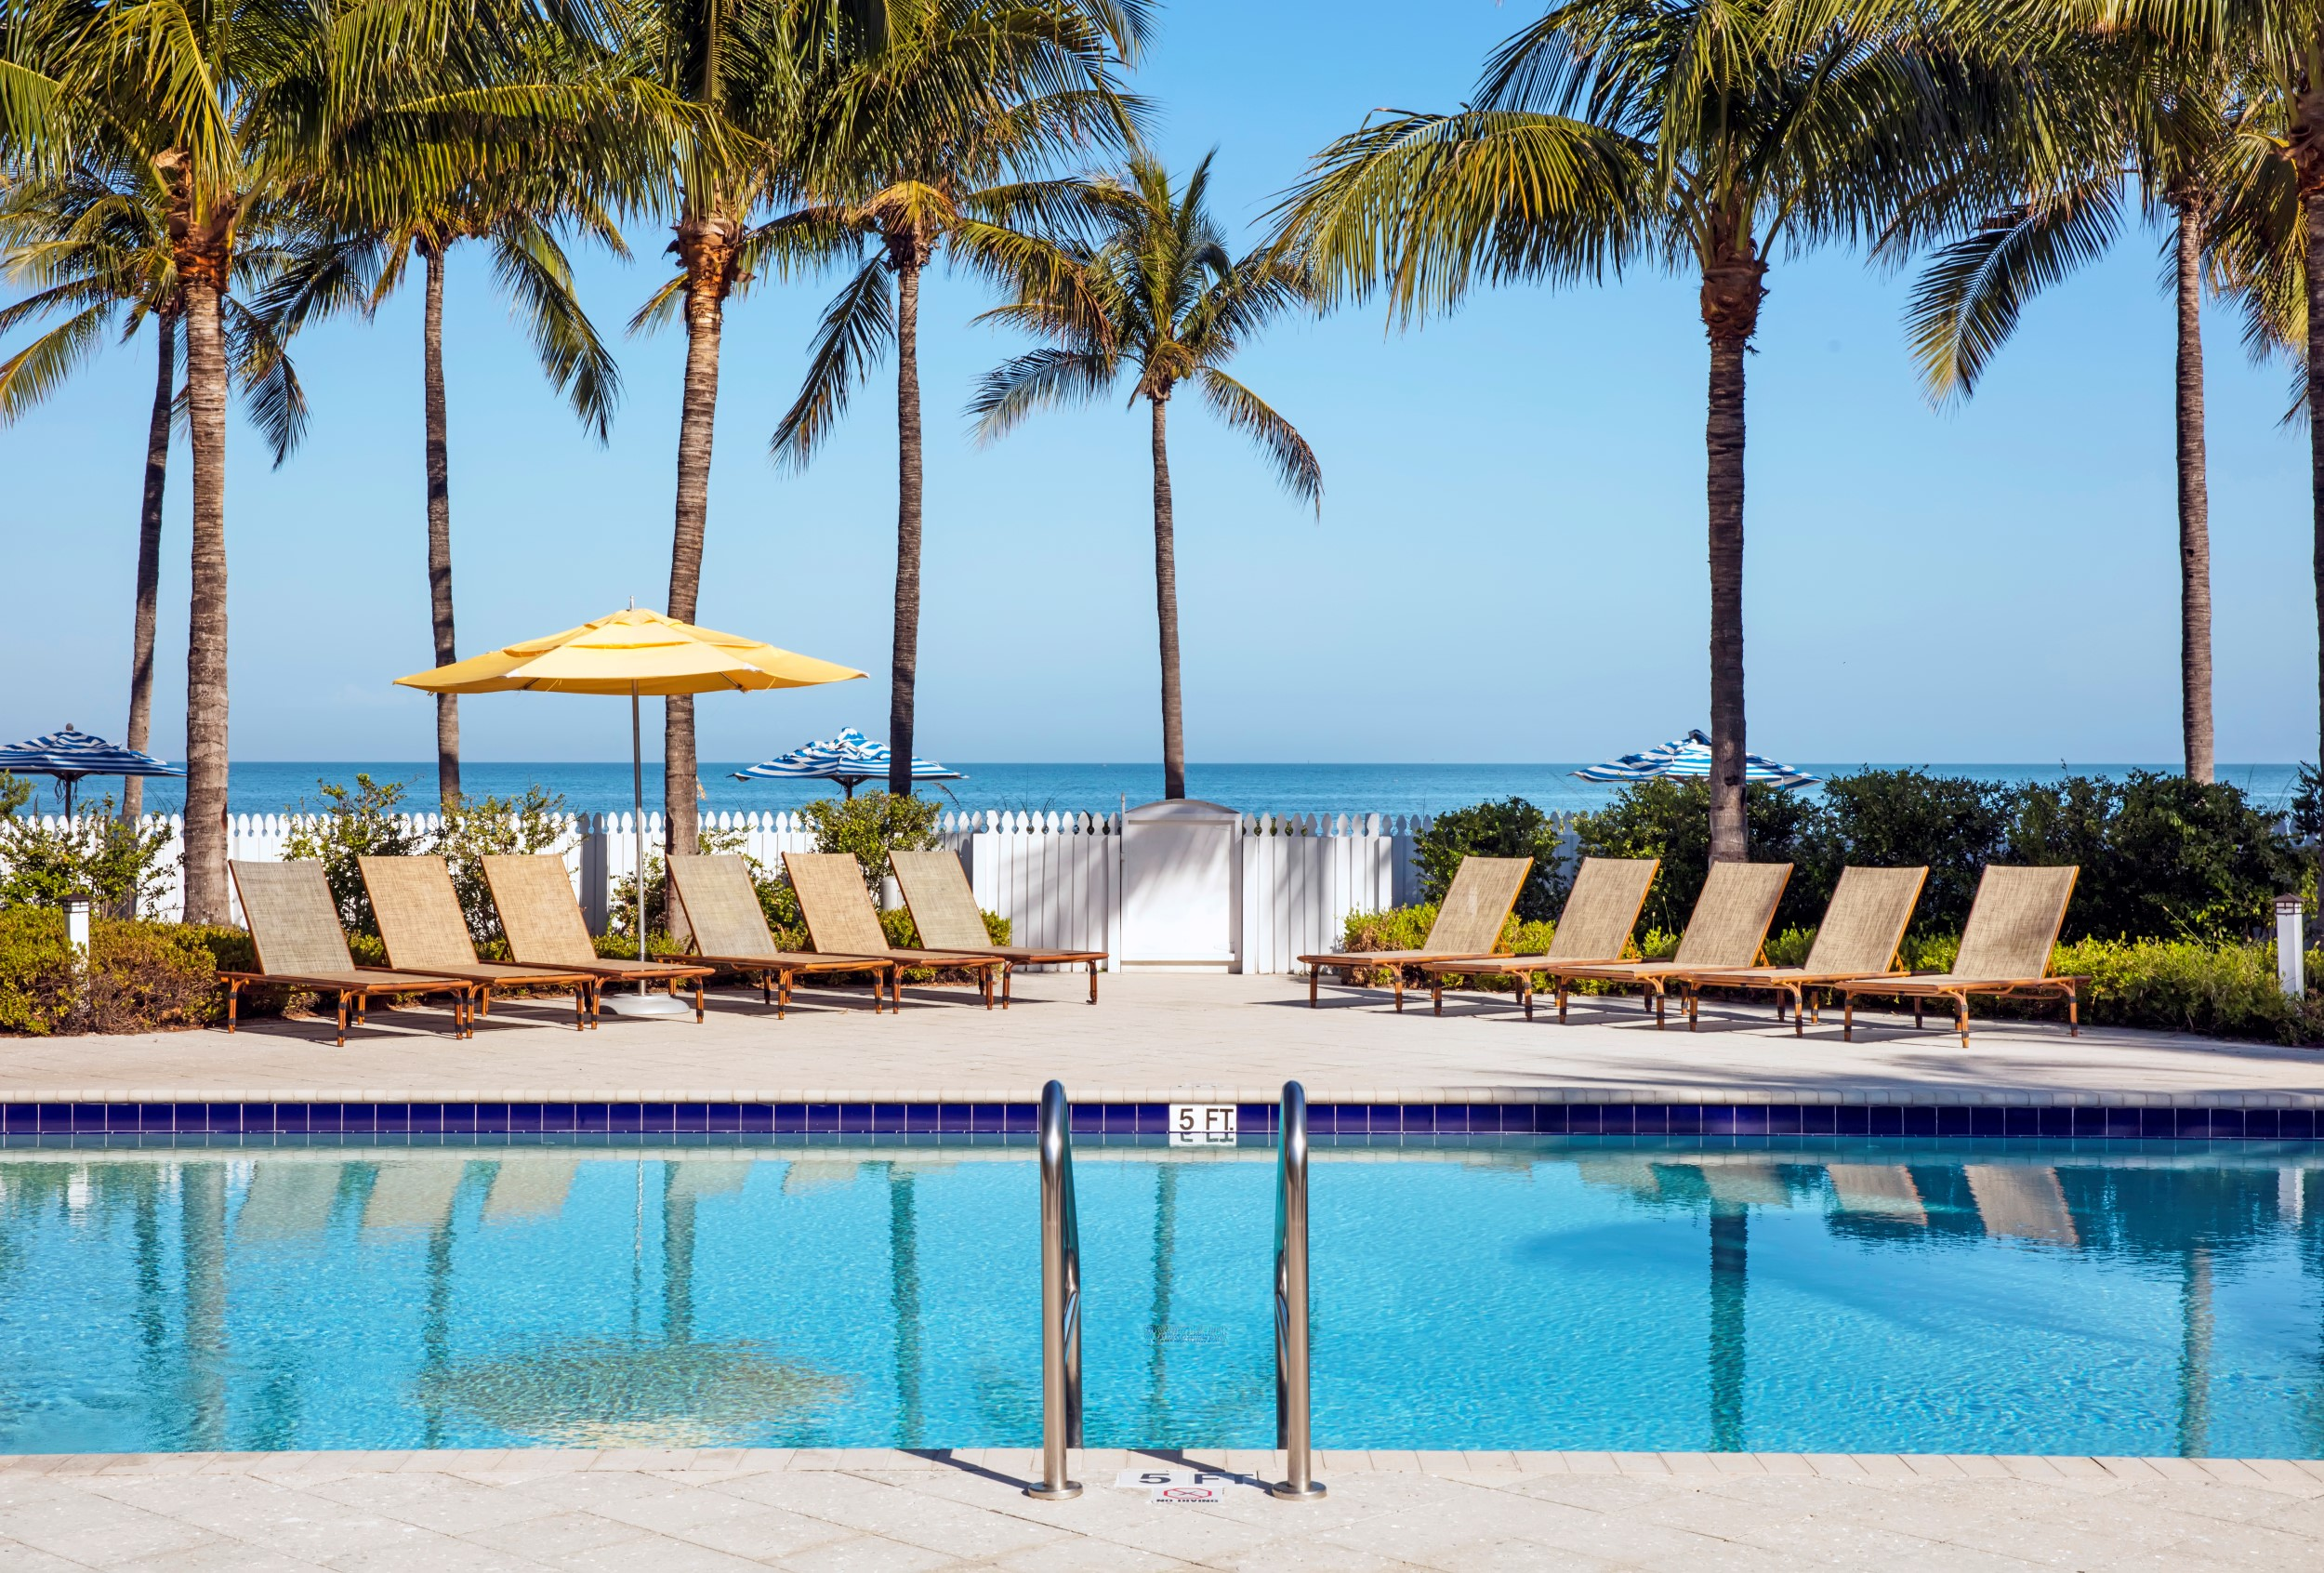 Sparkling swimming pool in the Florida Keys